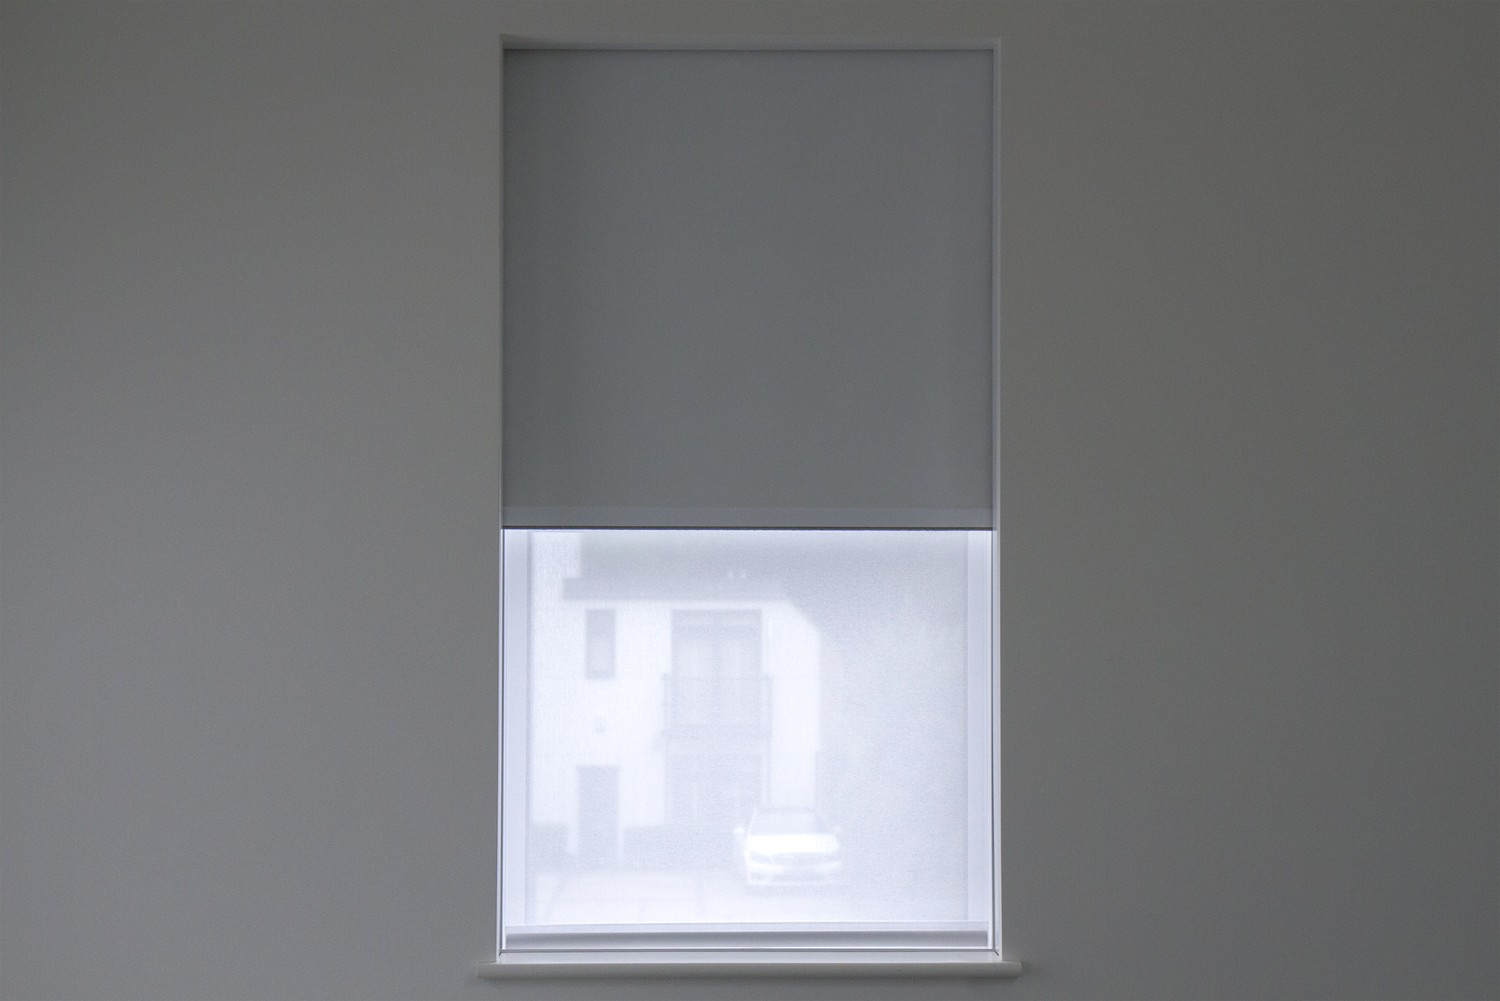 Sash-window-w-privacy-and-blackout-blind.jpg